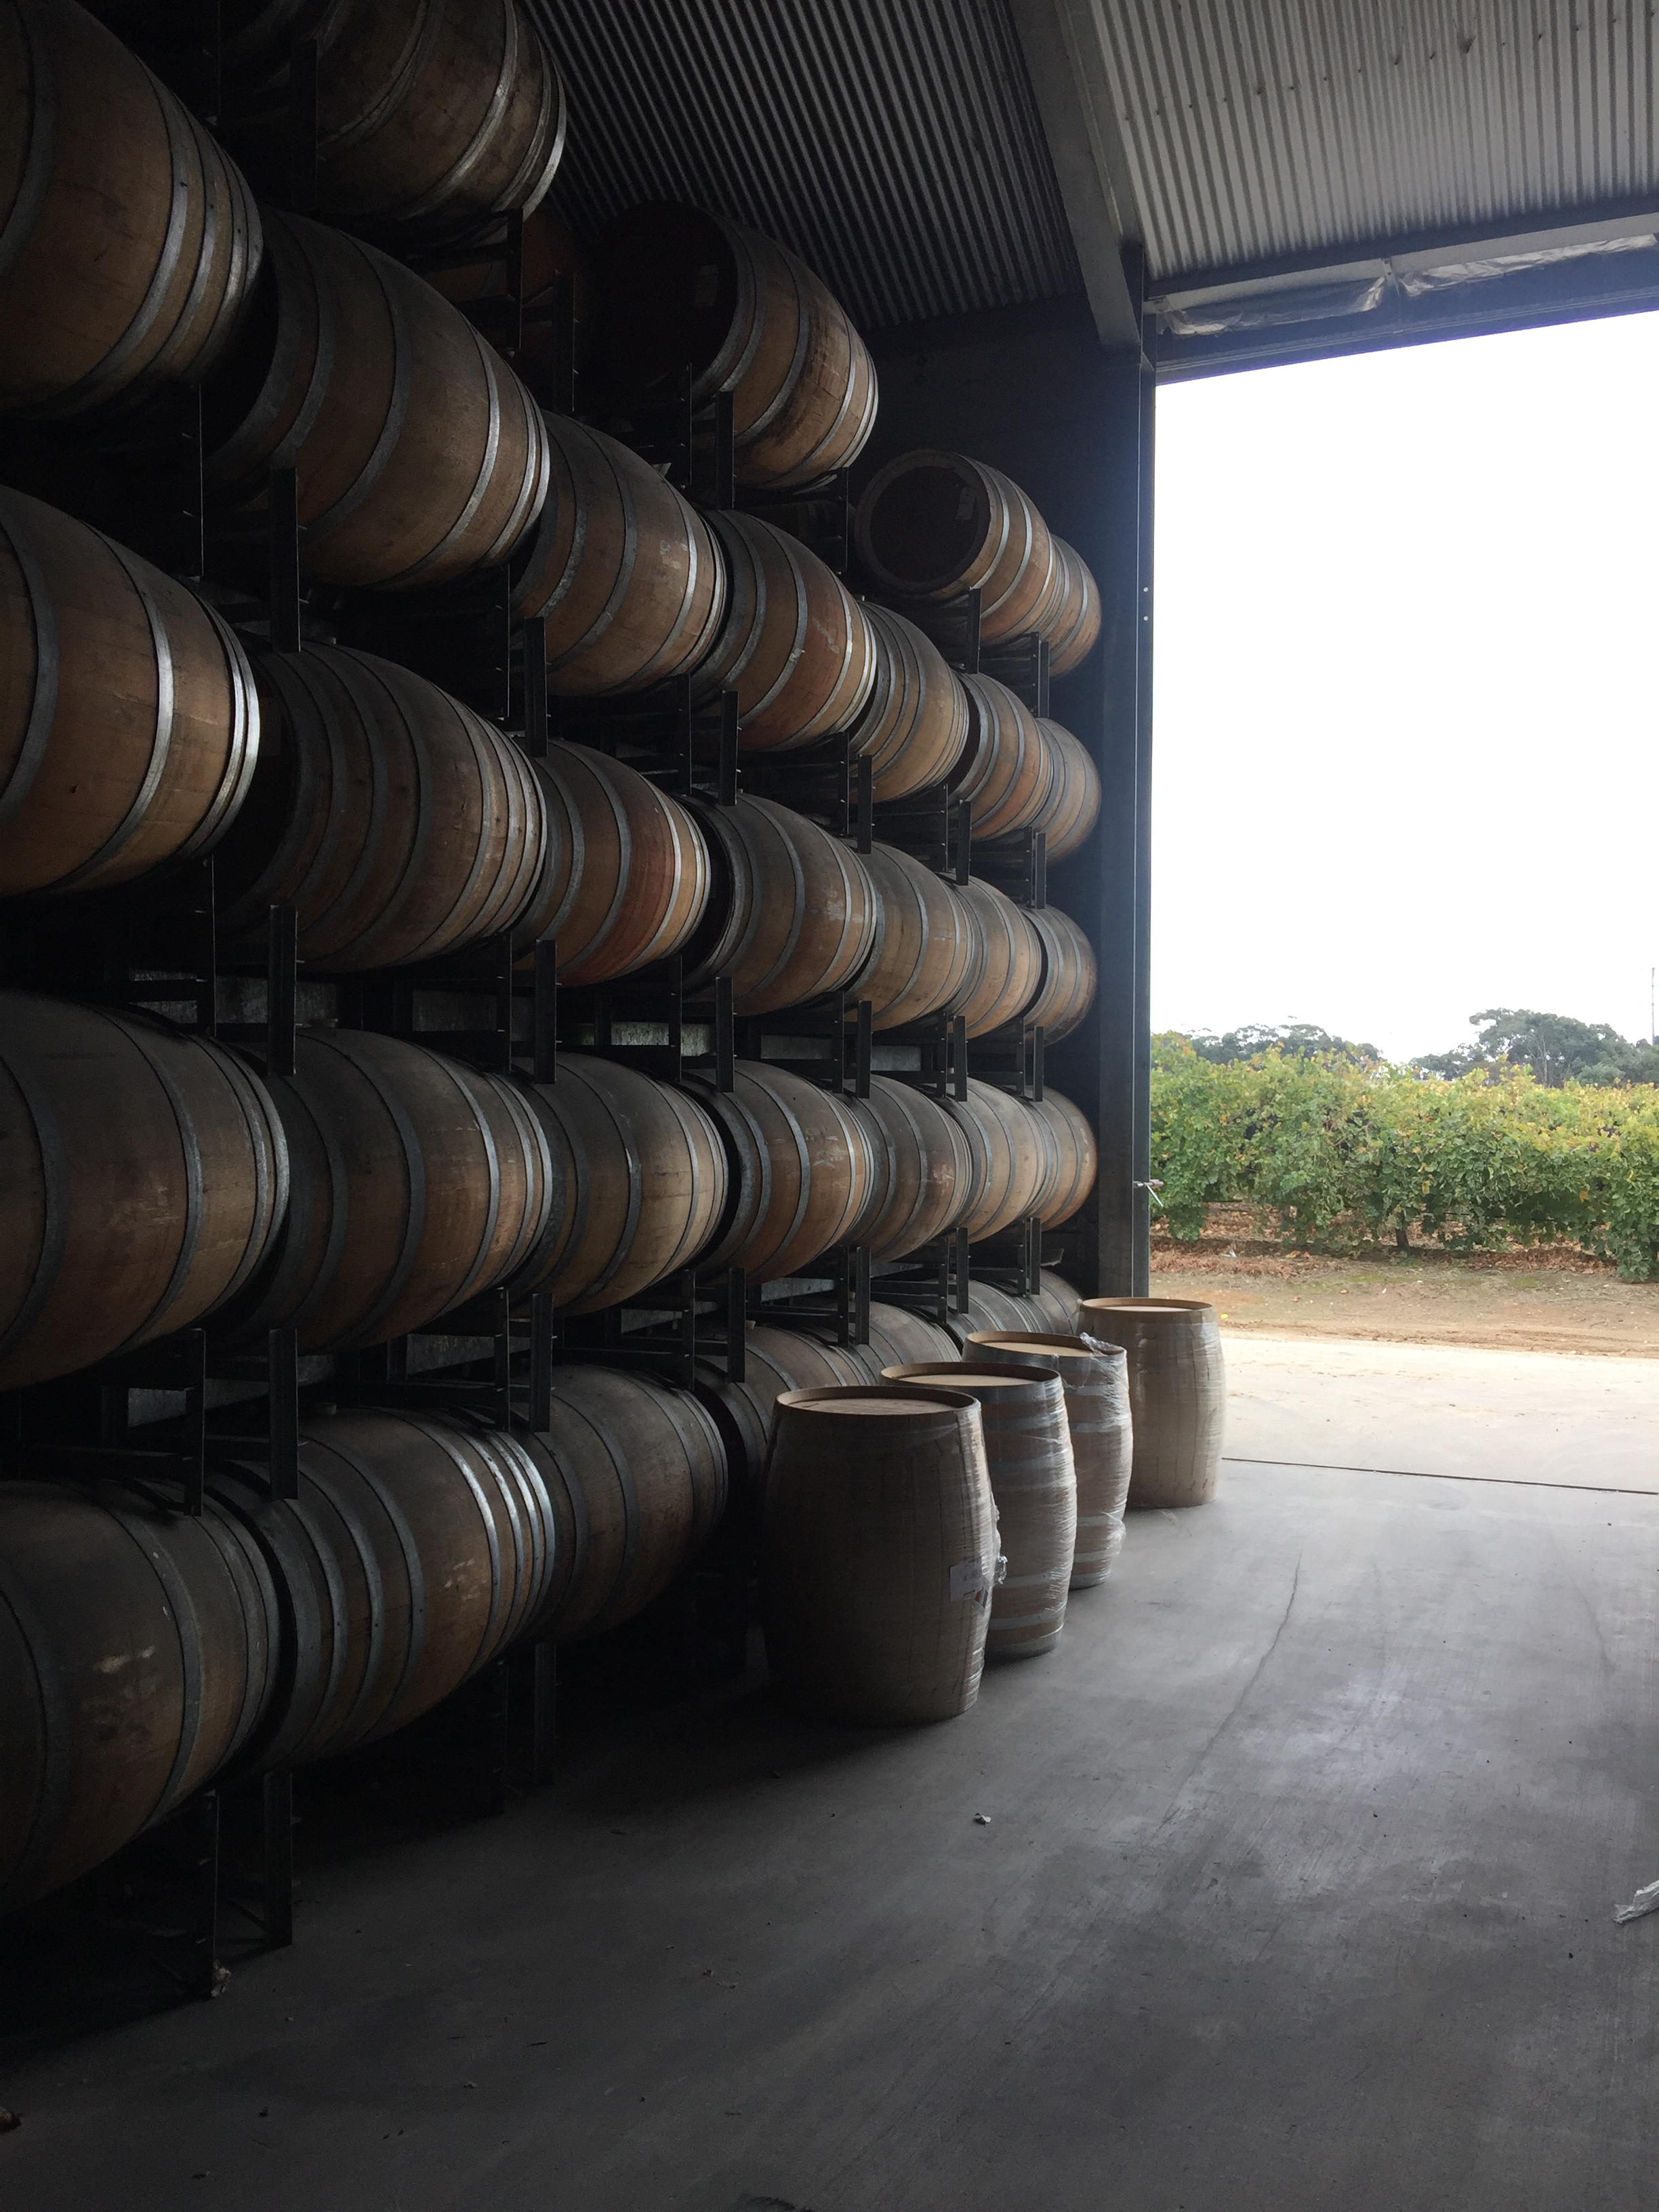 Pasin welcomes funding package to support wine industry